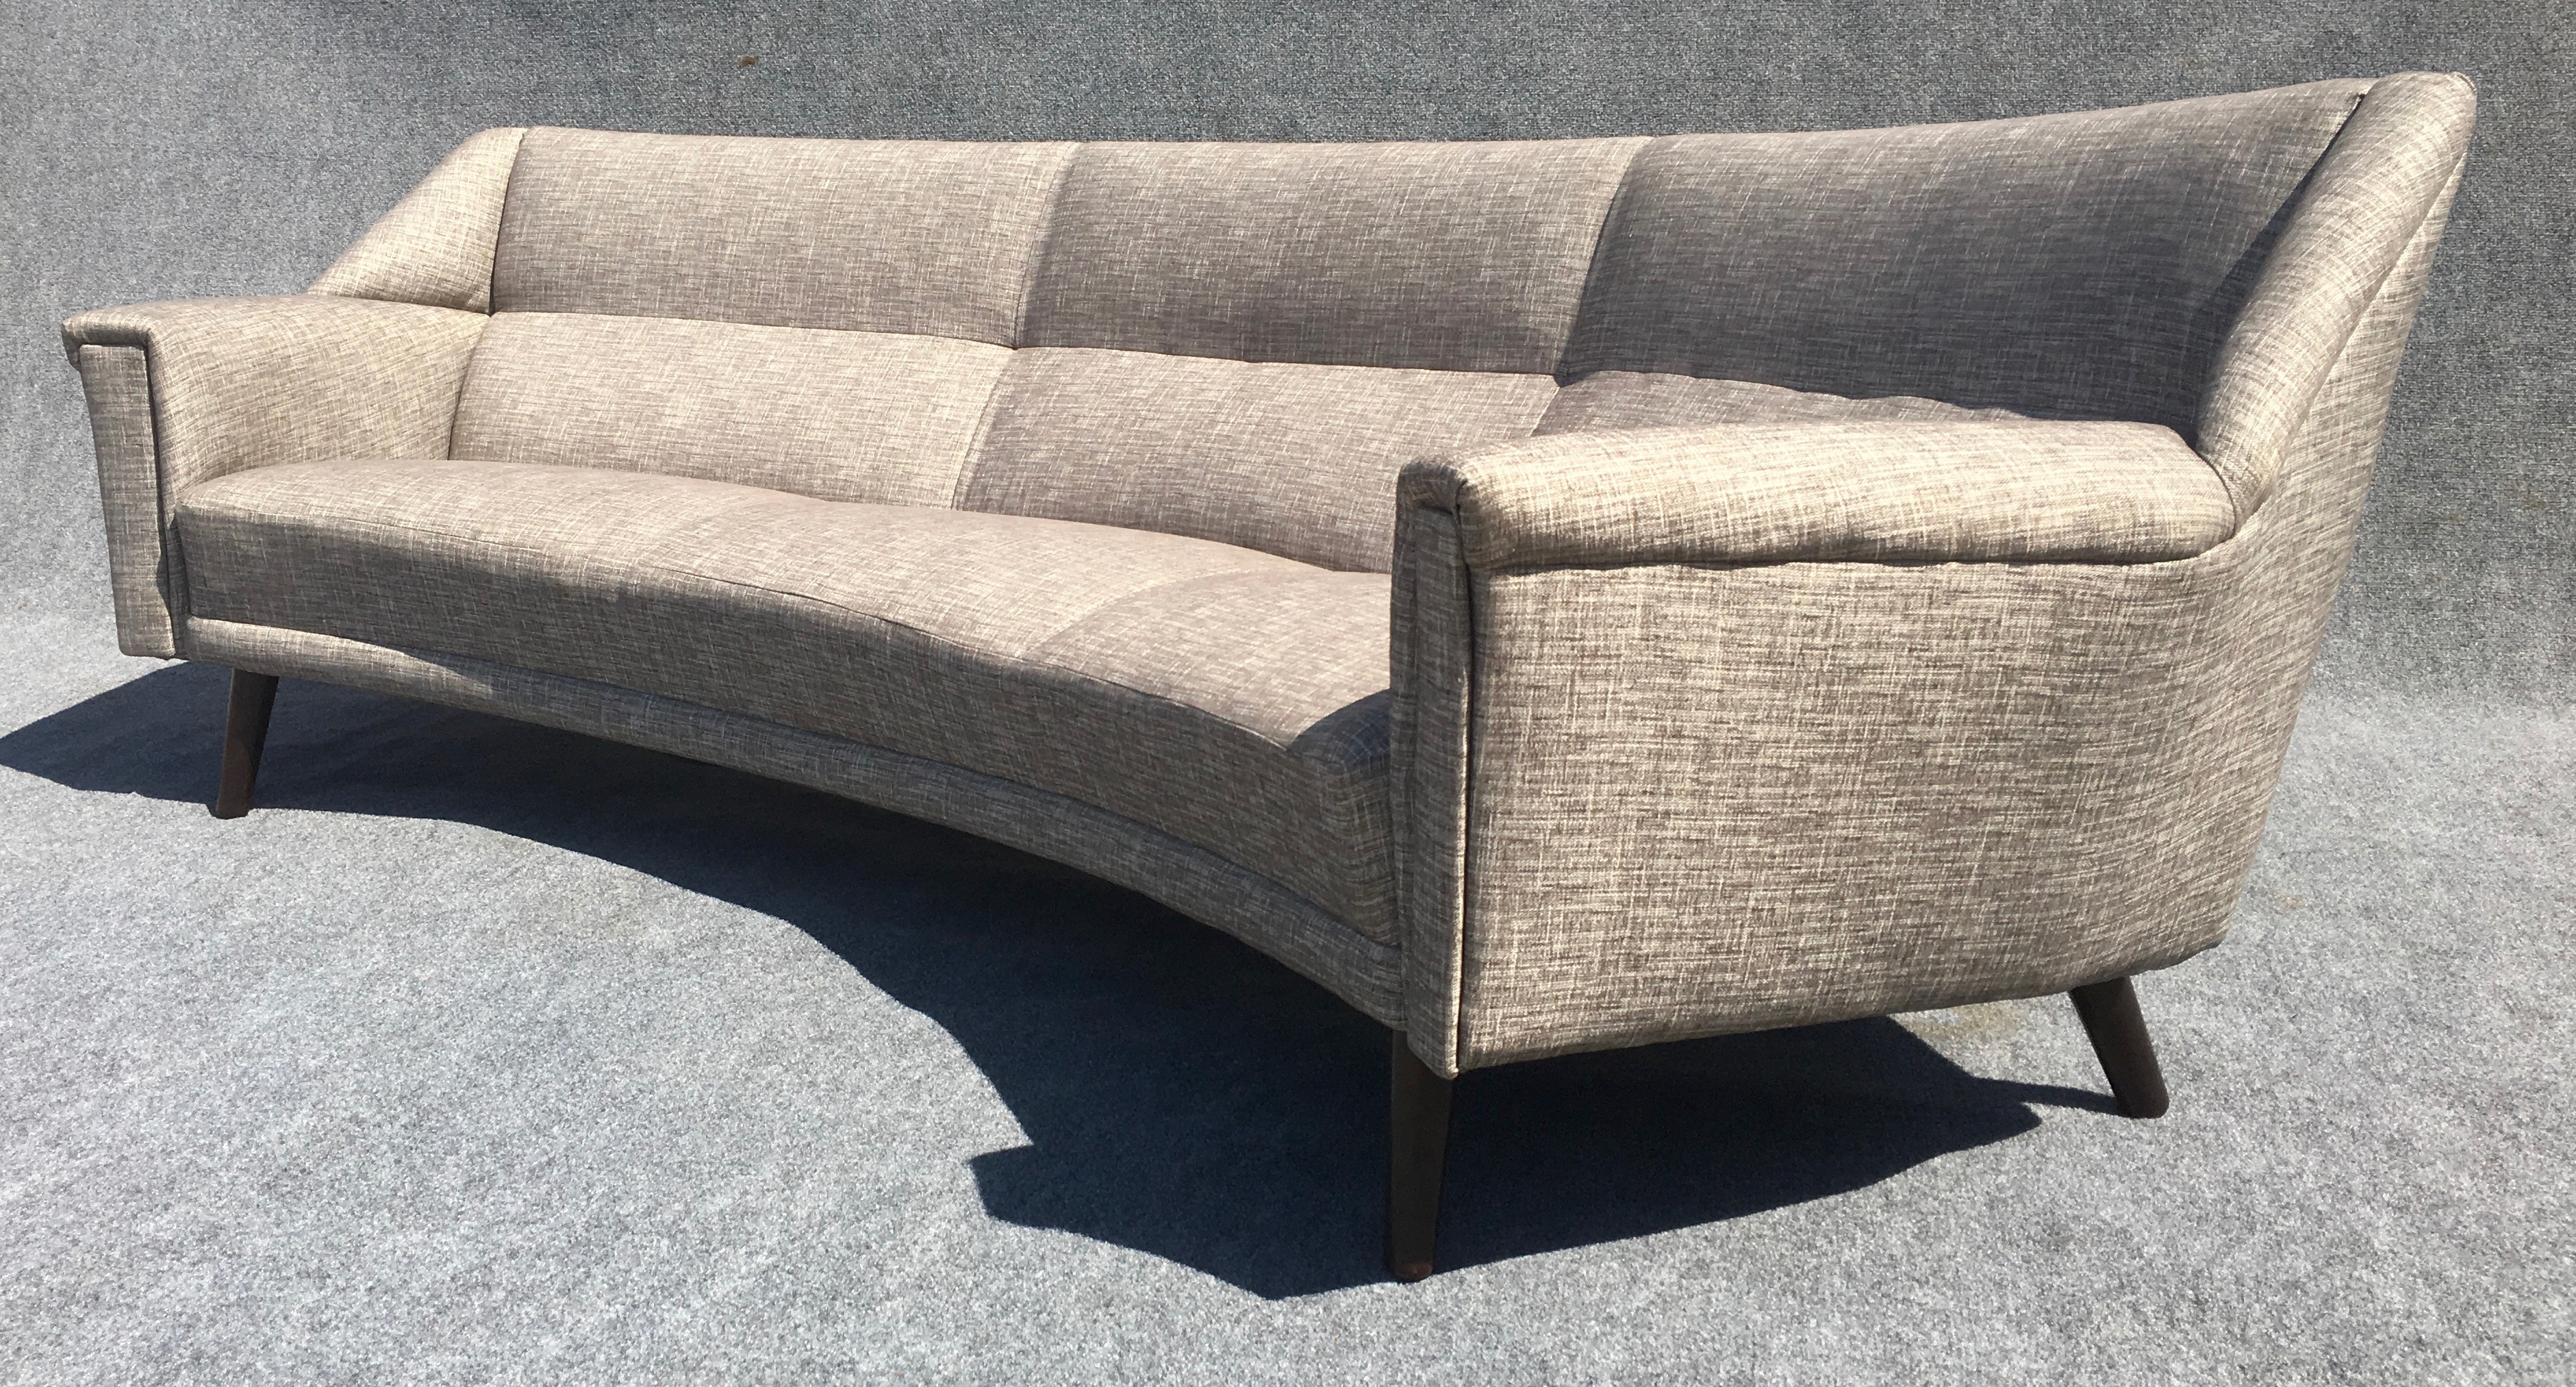 Danish Modern Curved Sofa By Kurt Ostervig For Henry Rolschau   Image 3 Of 9